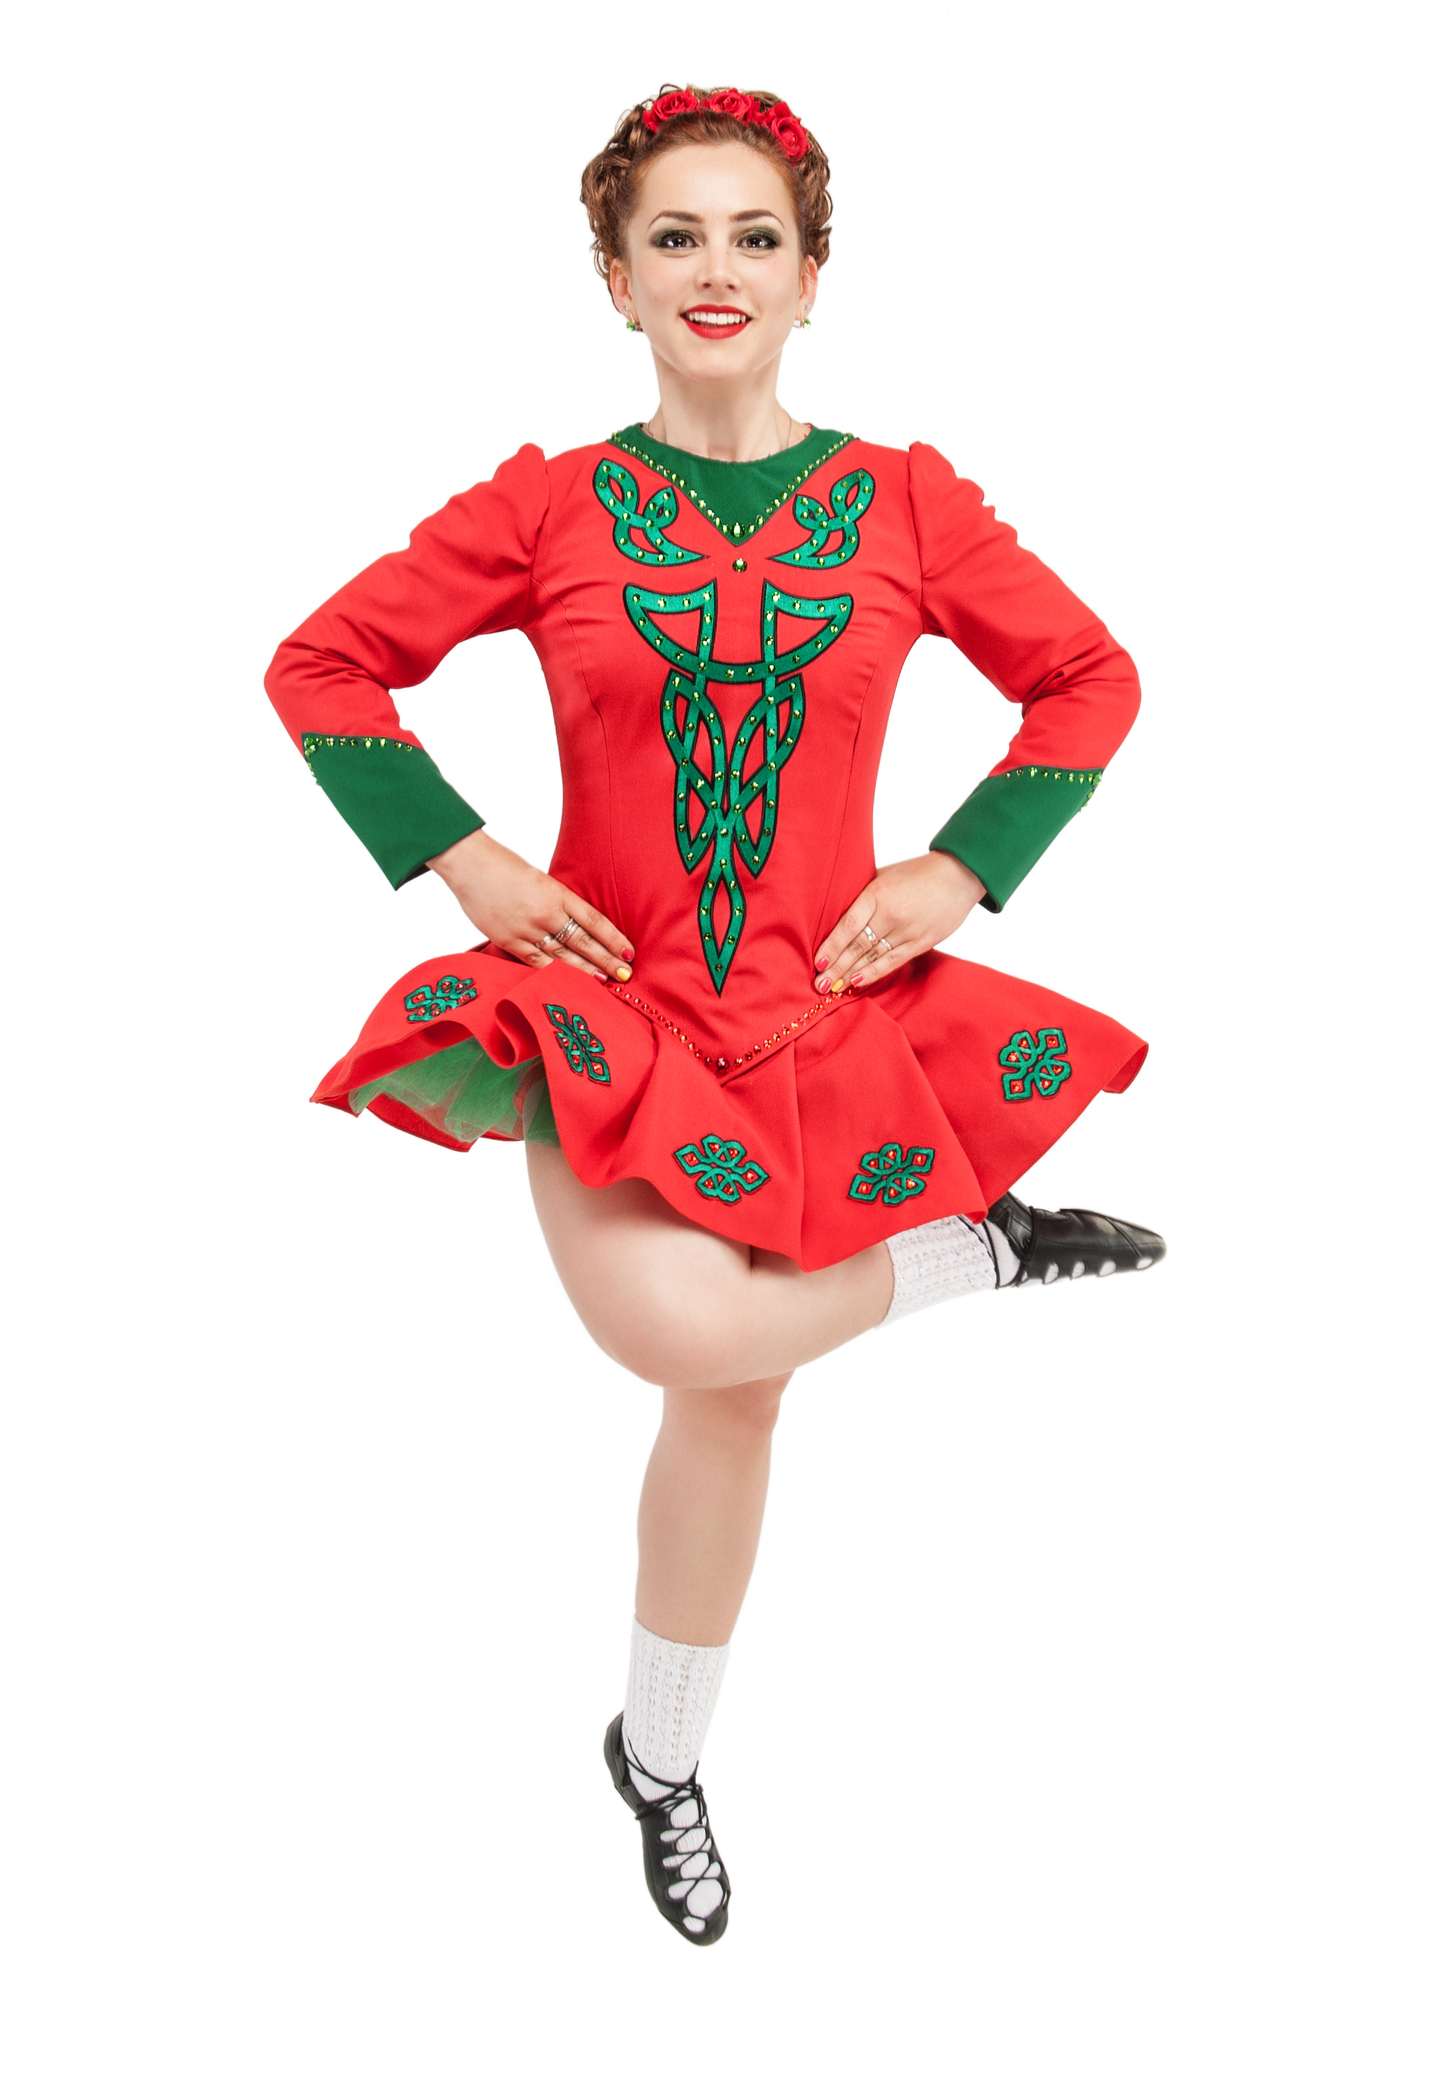 Happy female Irish dancer in red and green costume